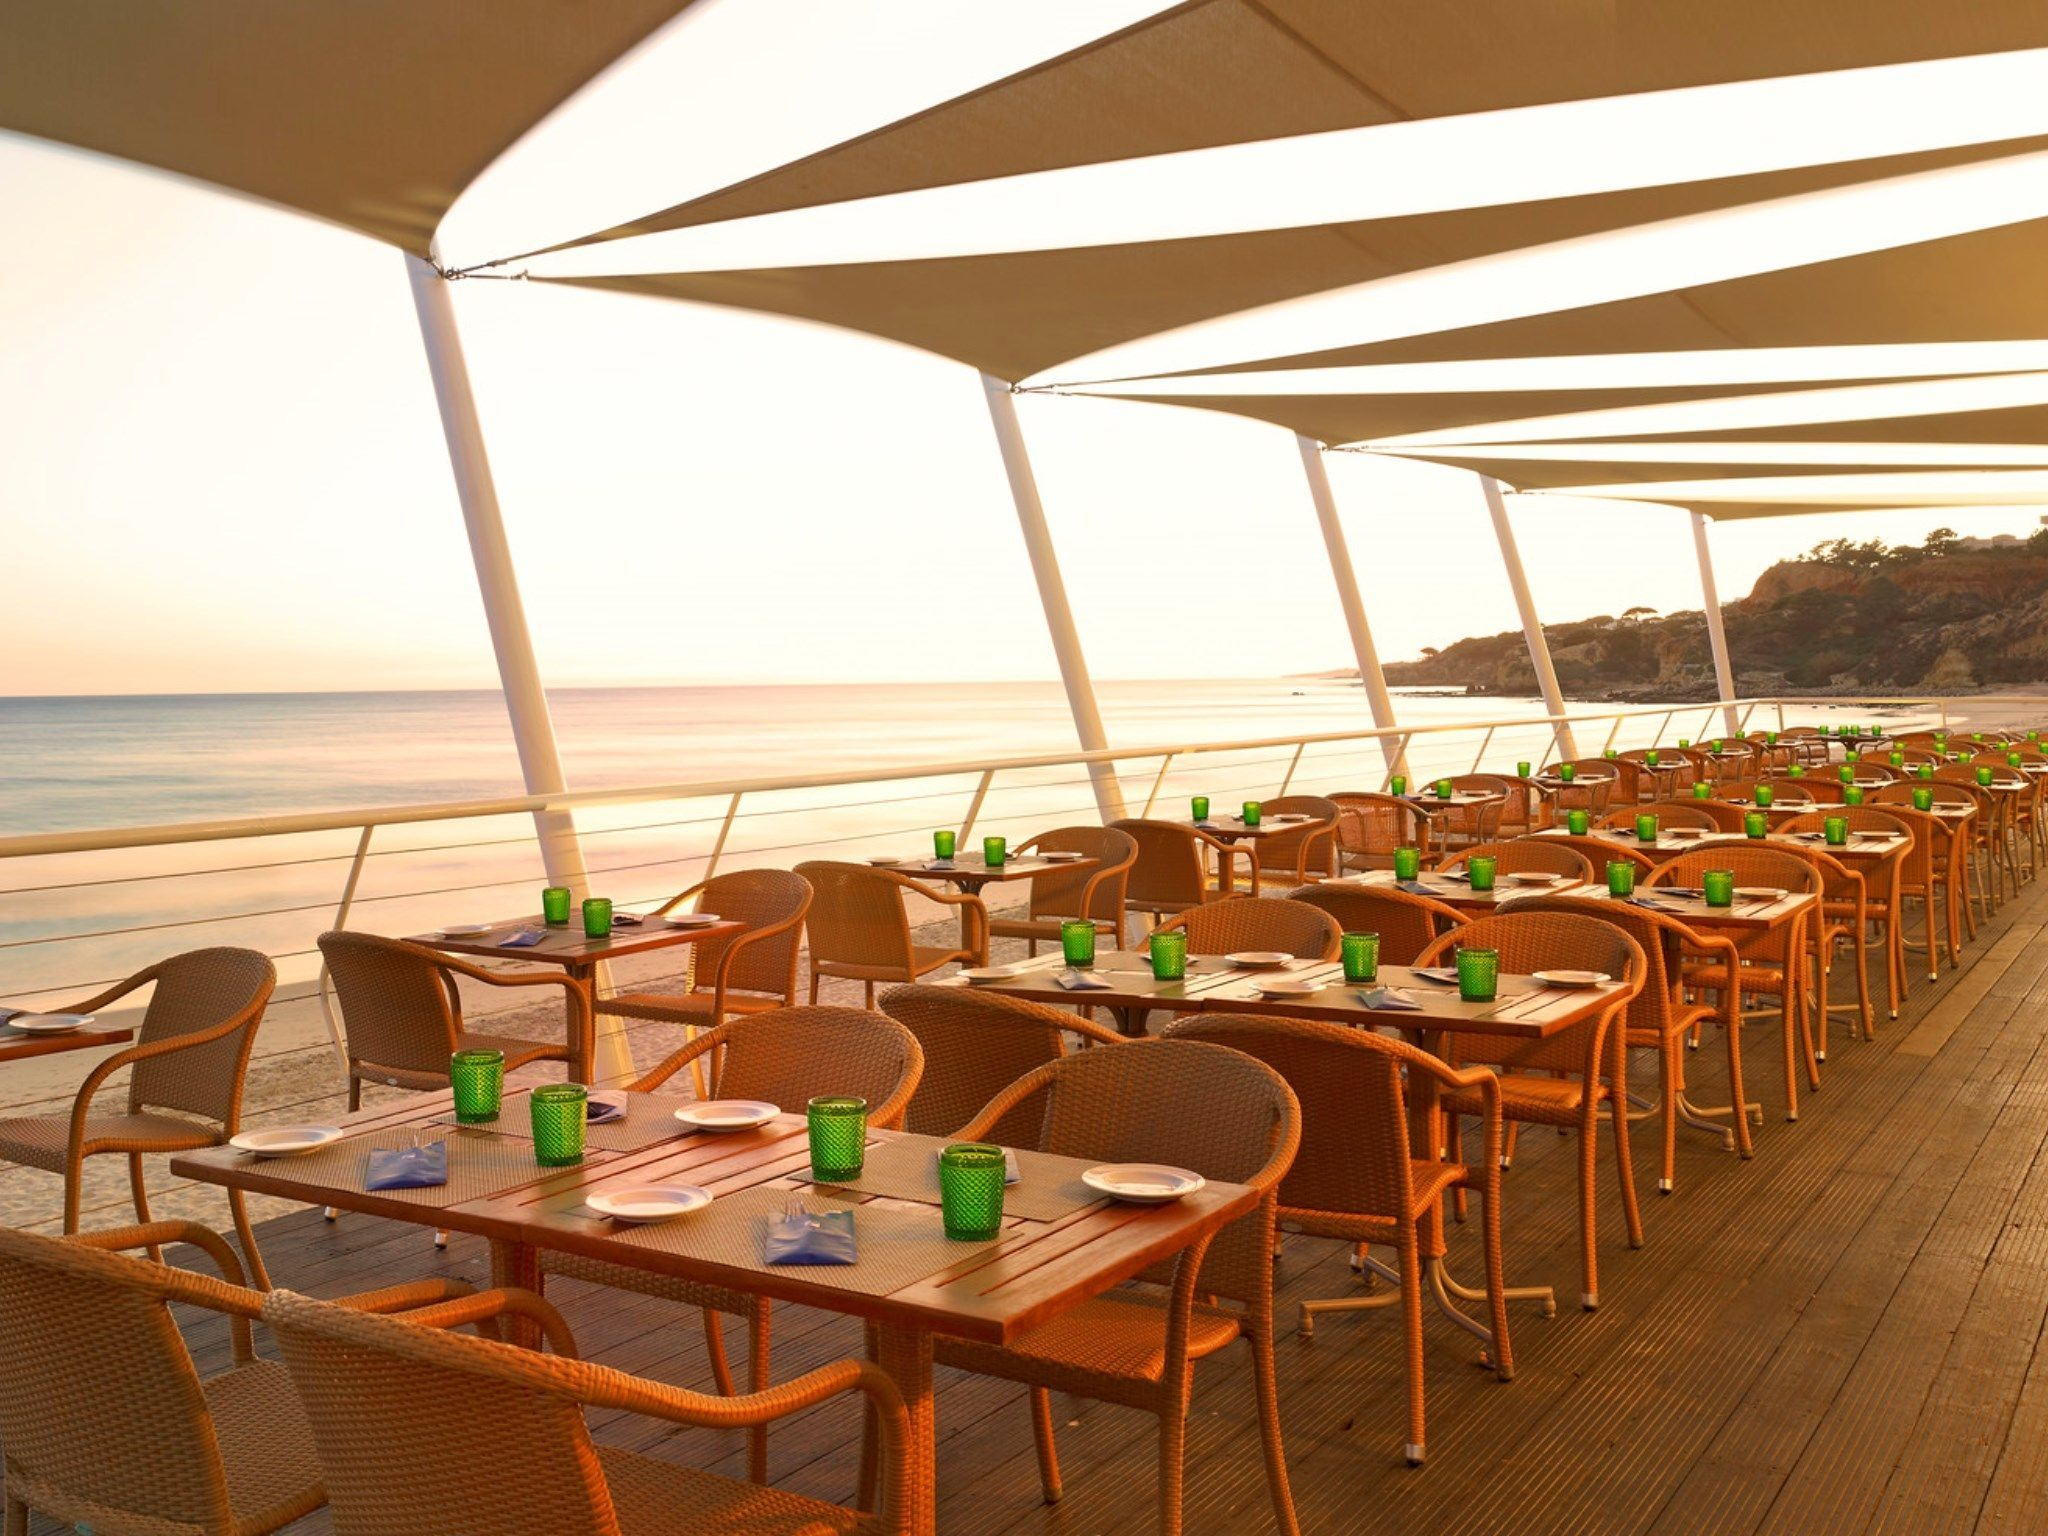 Pine Cliffs Restaurantes e Bars e Beach Club em Albufeira, Algarve